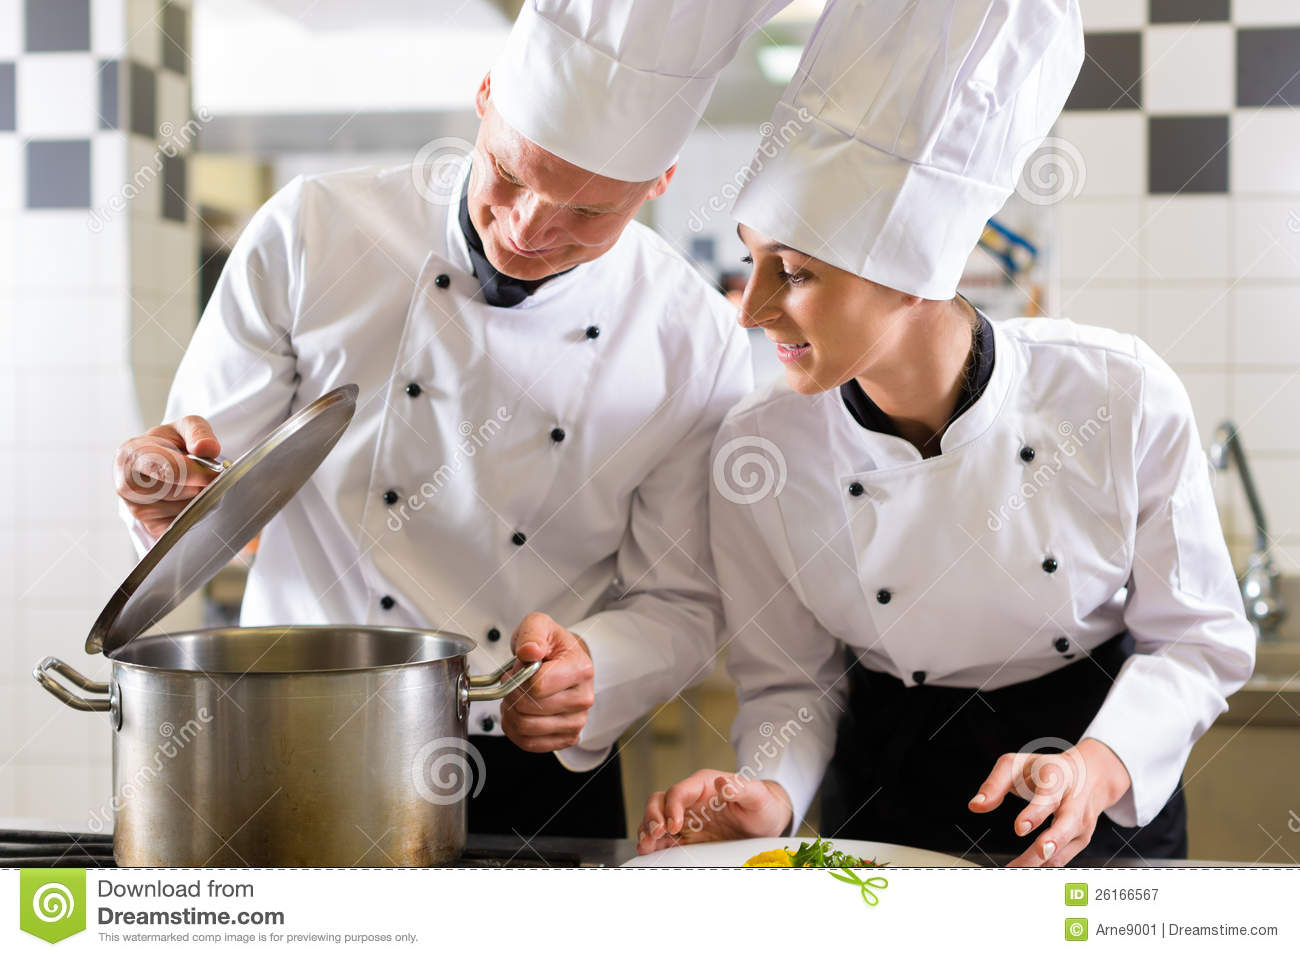 two chefs man and woman in hotel or restaurant kitchen working and